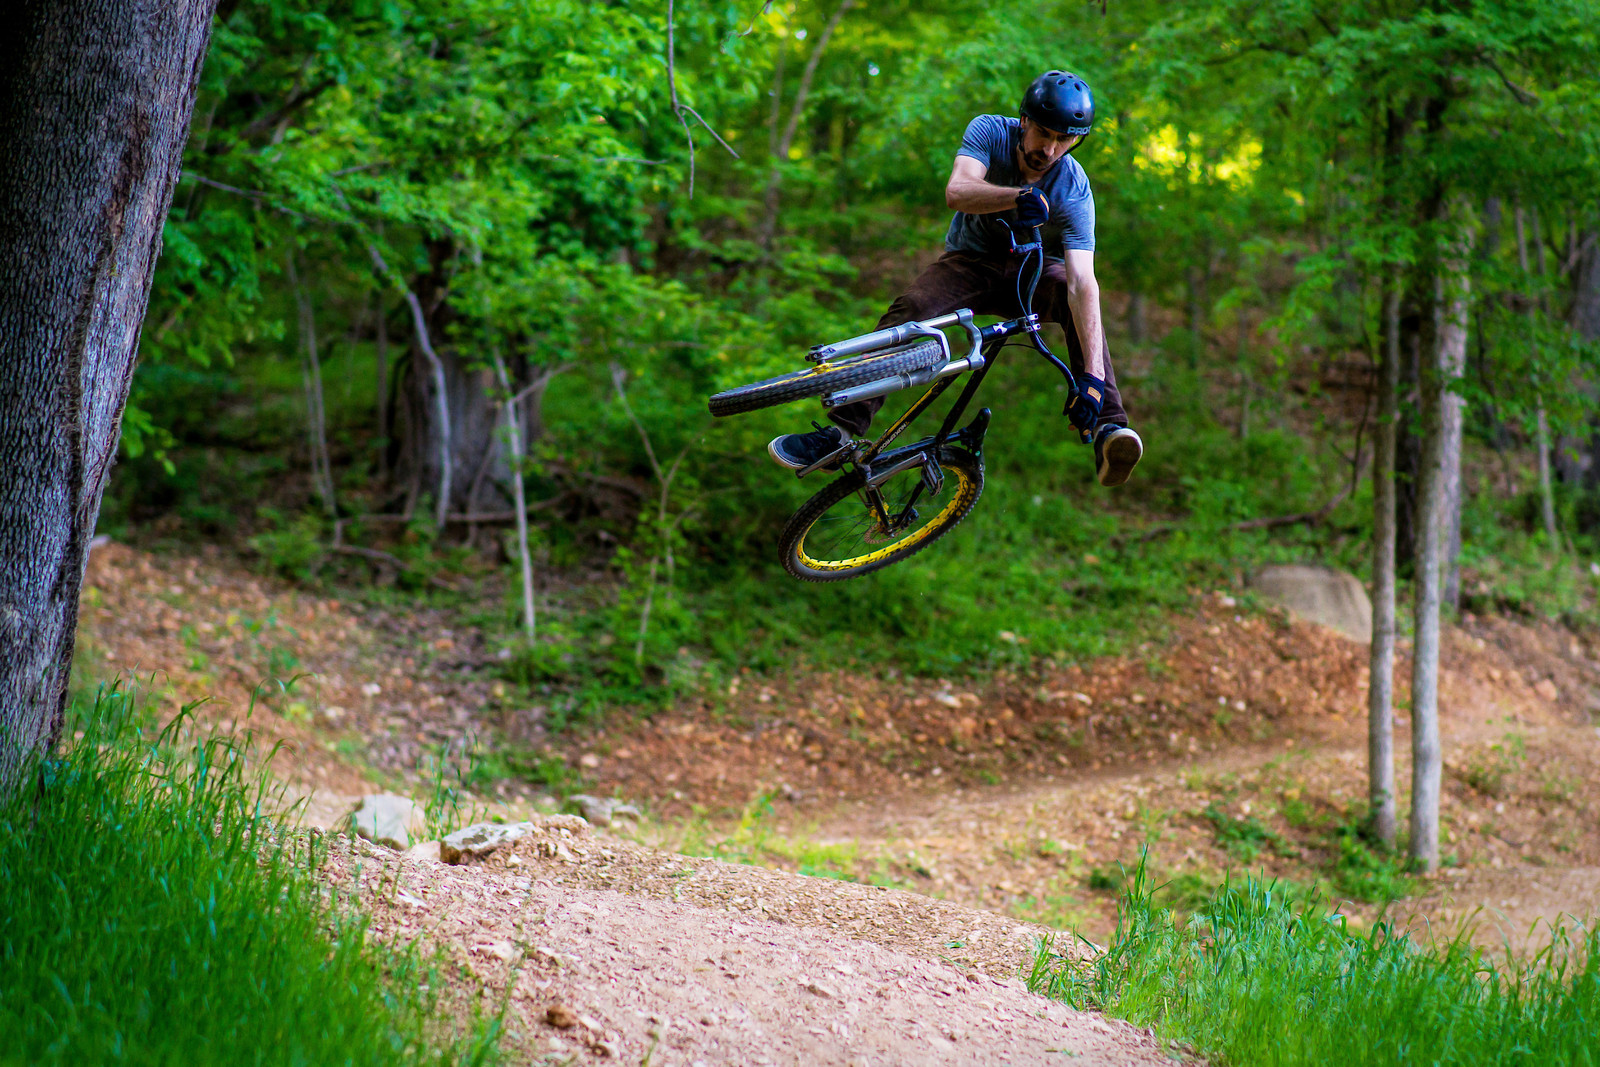 One footed table - slager - Mountain Biking Pictures - Vital MTB